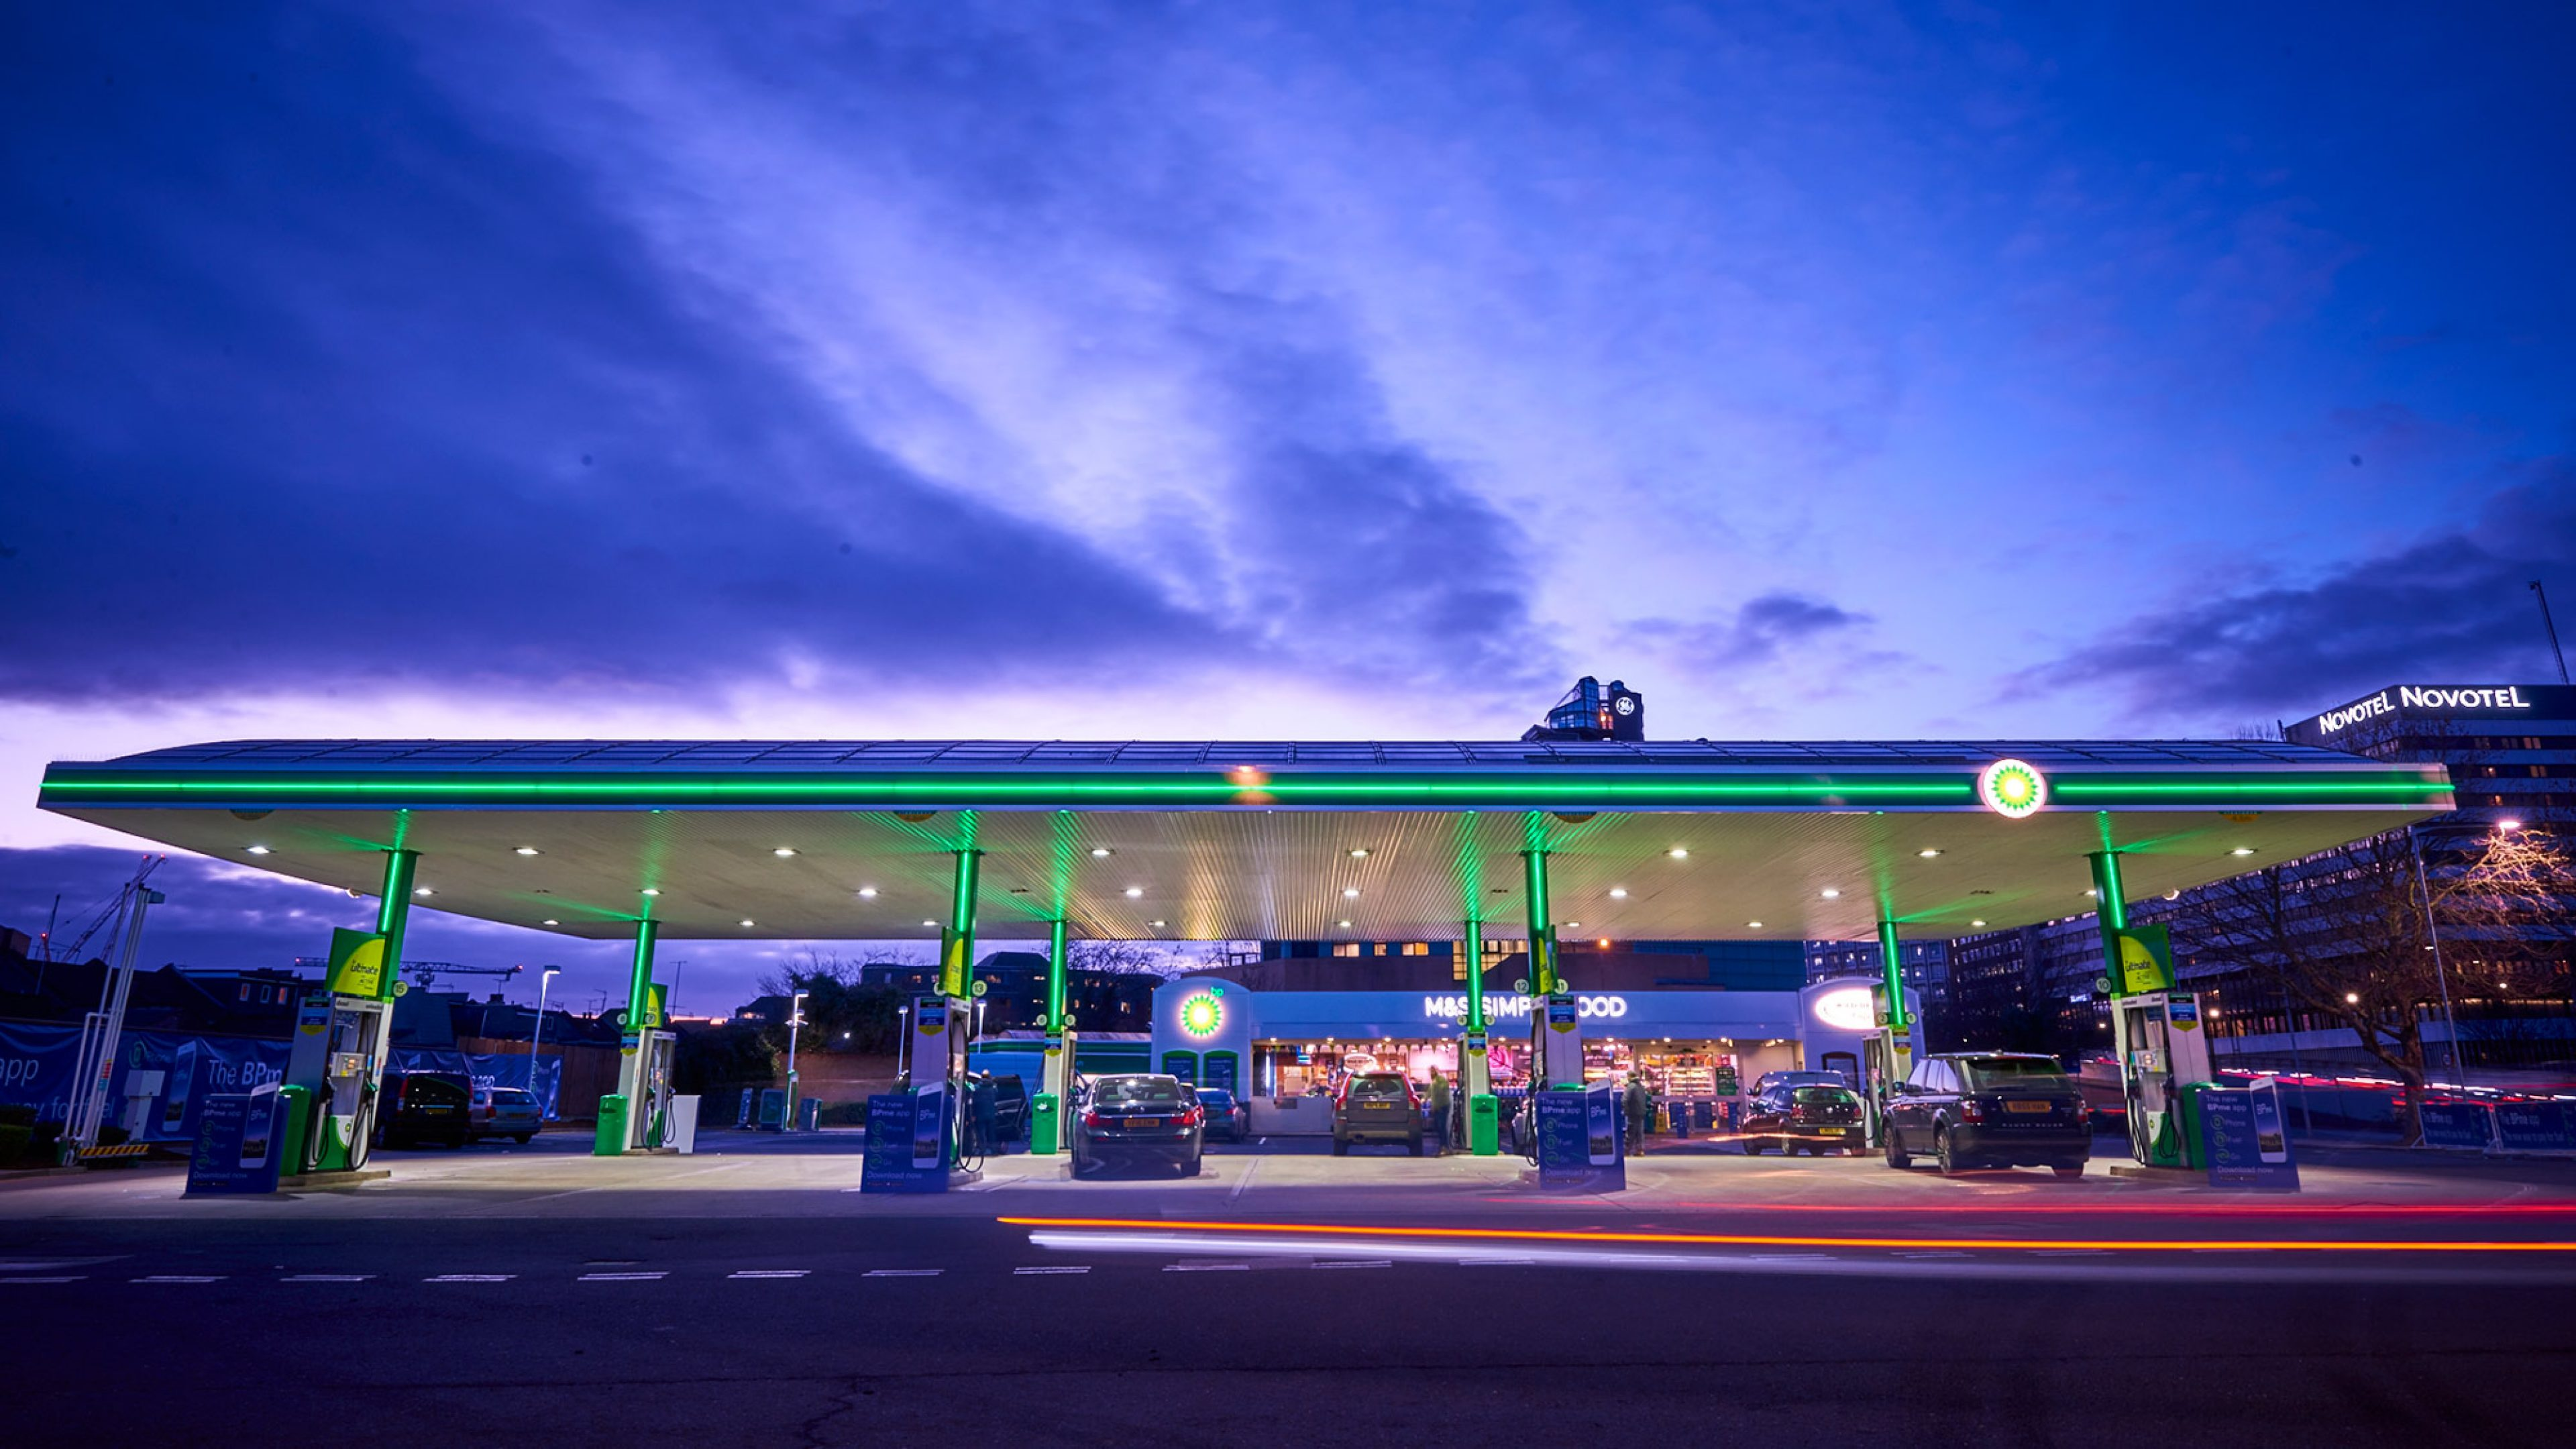 BP retail service station in London at dusk